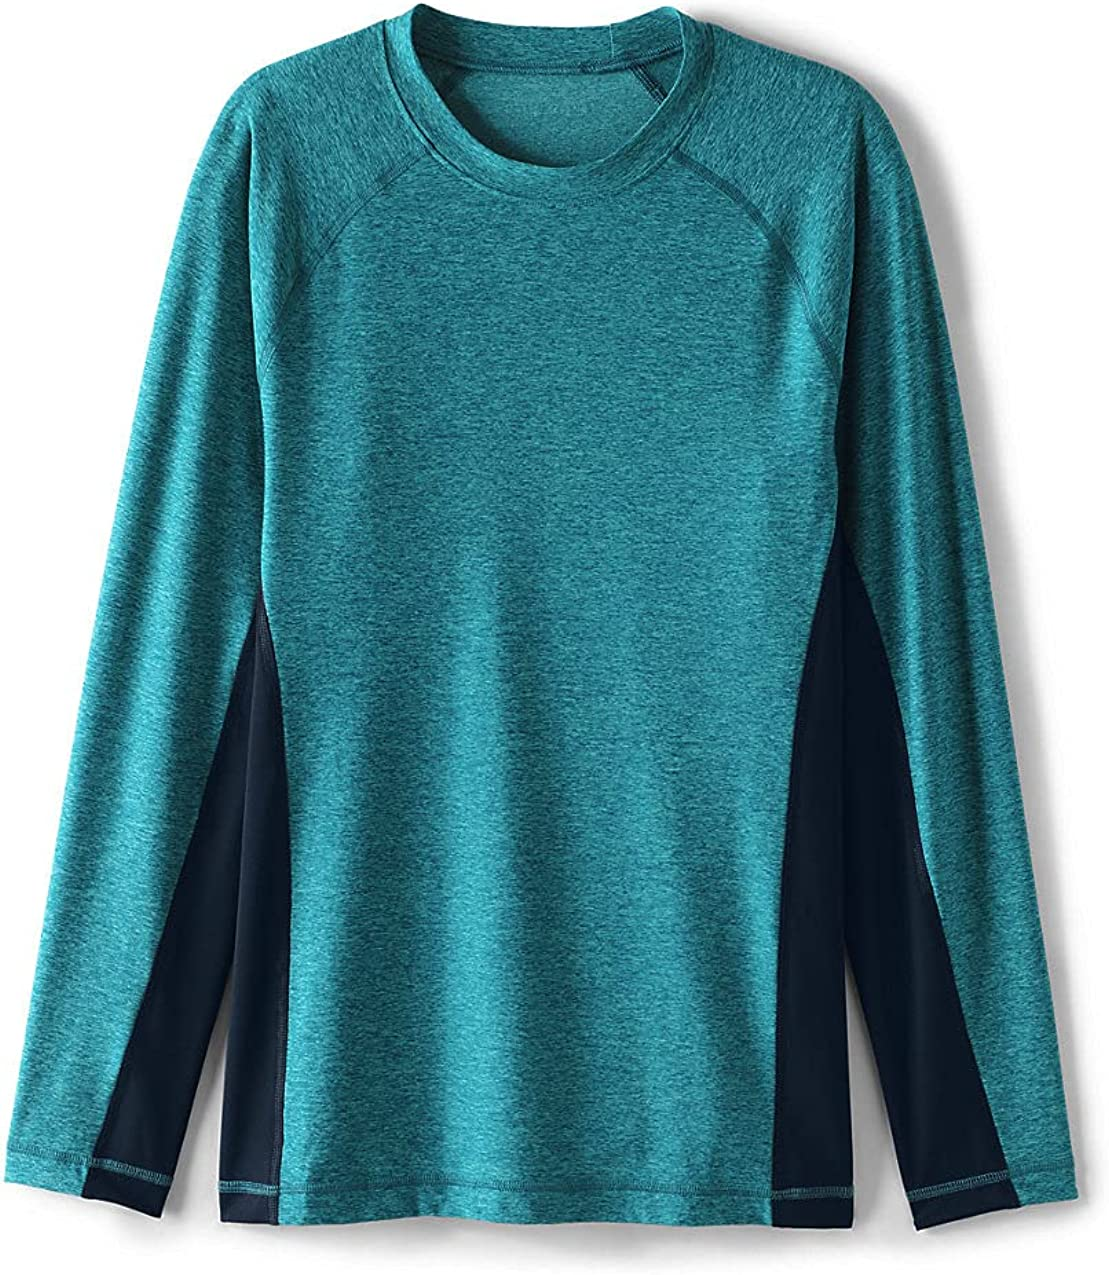 Lands' End Today's only New products world's highest quality popular Men's Long Sleeve Guard Rash Swim Tee